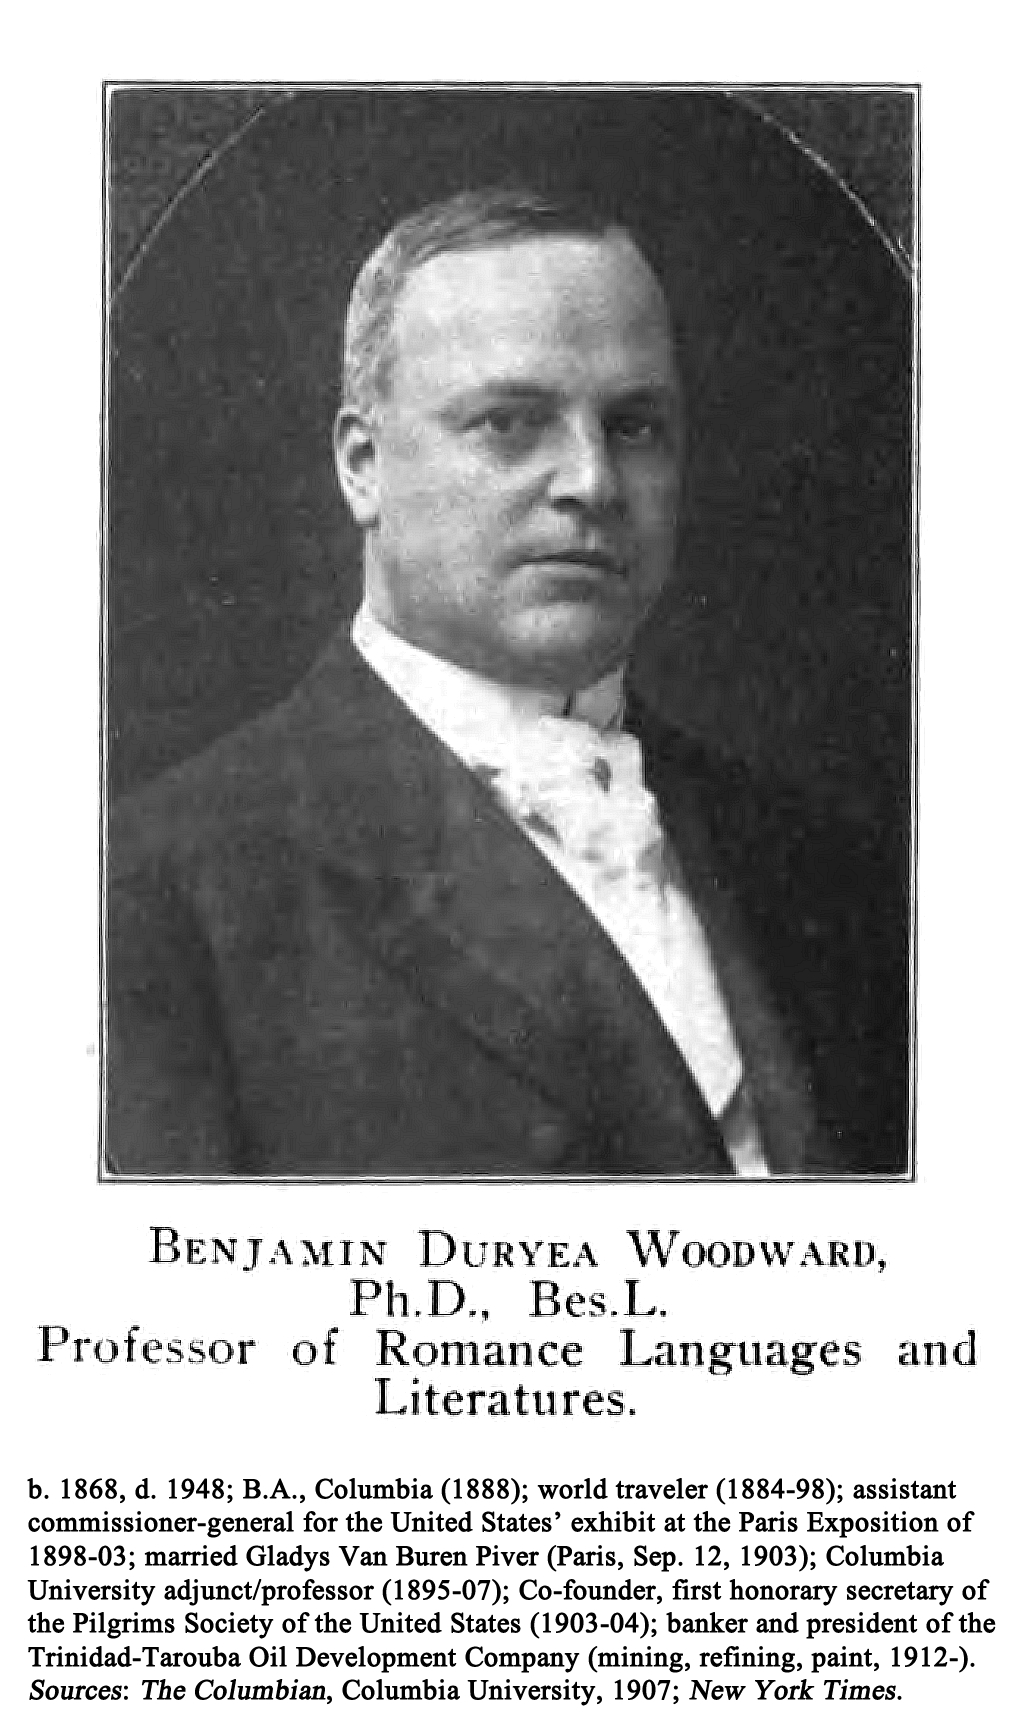 BENJAMIN DURYEA WOODWARD, Ph.D., Bes.L., Professor of Romance Languages and Literatures; 1868; Assistant Commissioner of the United States' exhibit at the Paris Exposition of 1900; Columbia University professor (ca. 1901-07); Co-founder, first honorary secretary of the Pilgrims Society of the United States (1903-04); banker and president of the Trinidad-Tarouba Oil Development Company ca. 1909-. Source: The Columbian, Columbia University, 1907.